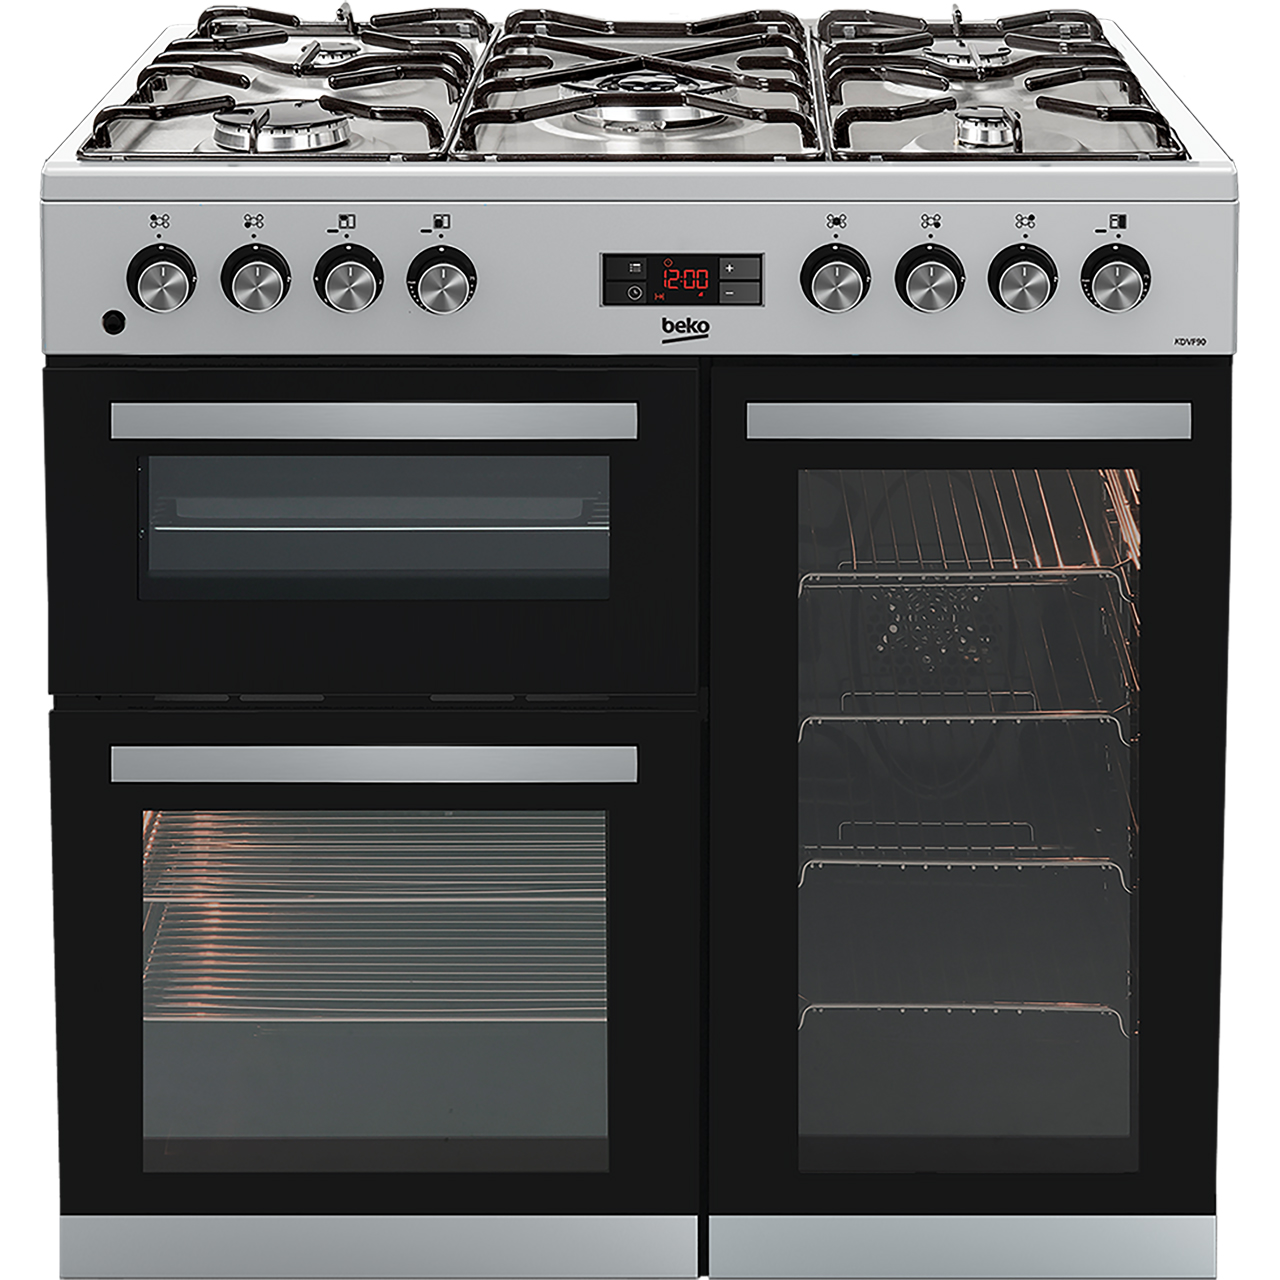 beko kdvf90x 90cm dual fuel range cooker review. Black Bedroom Furniture Sets. Home Design Ideas